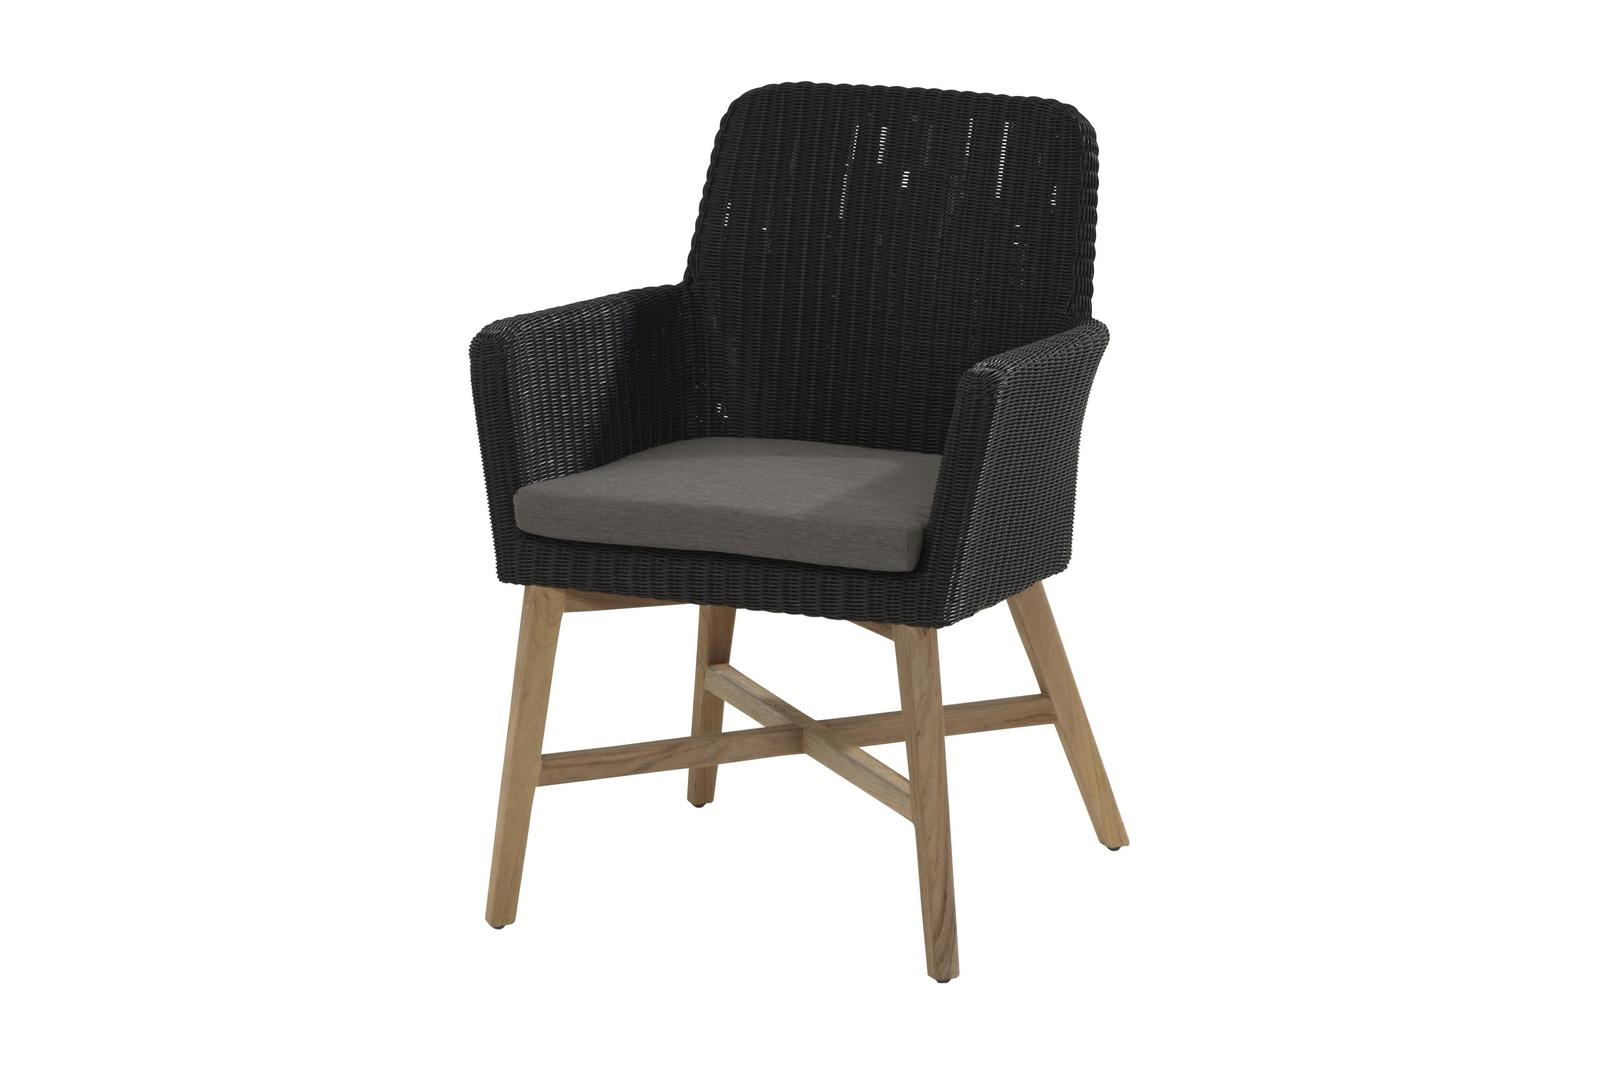 4 Seasons Outdoor Lisboa teak dining chair anthracite